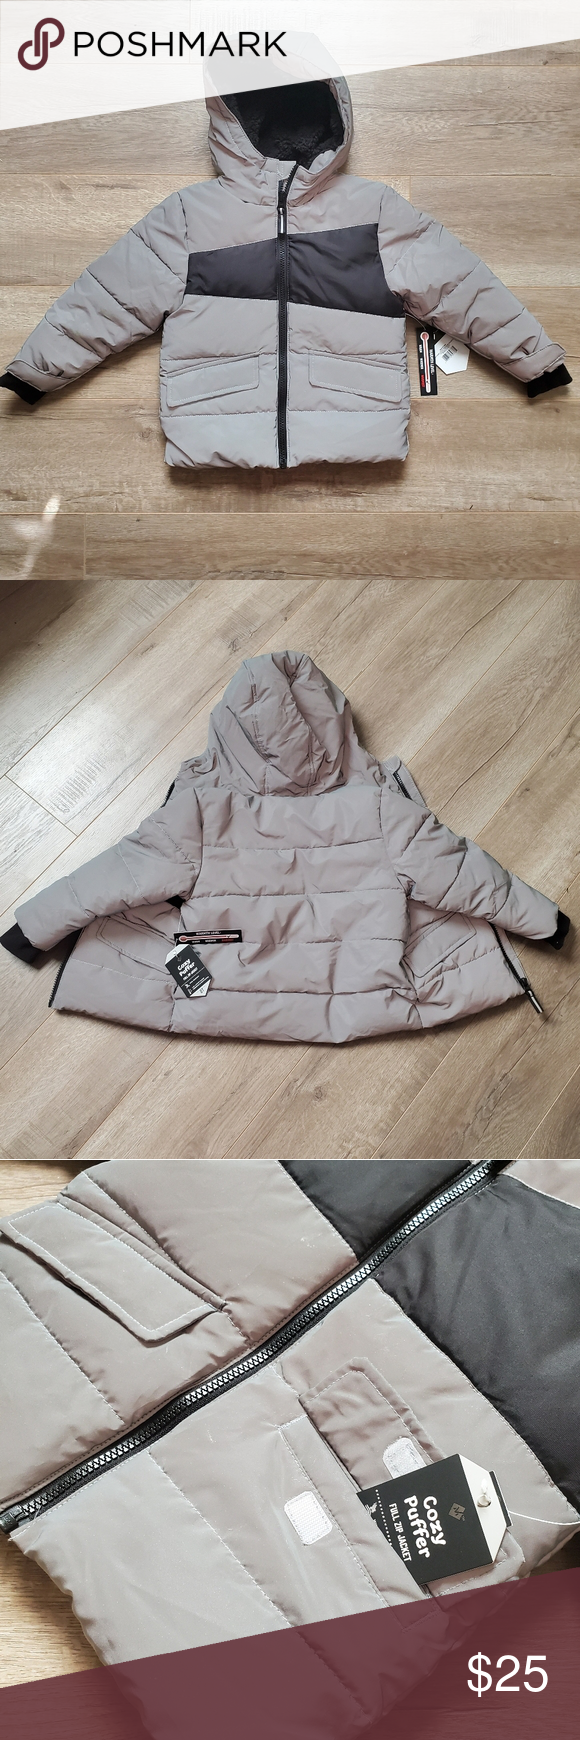 Toddler Reflective Thick Cozy Puffer Jacket 2t Puffer Jackets Puffer Toddler [ 1740 x 580 Pixel ]